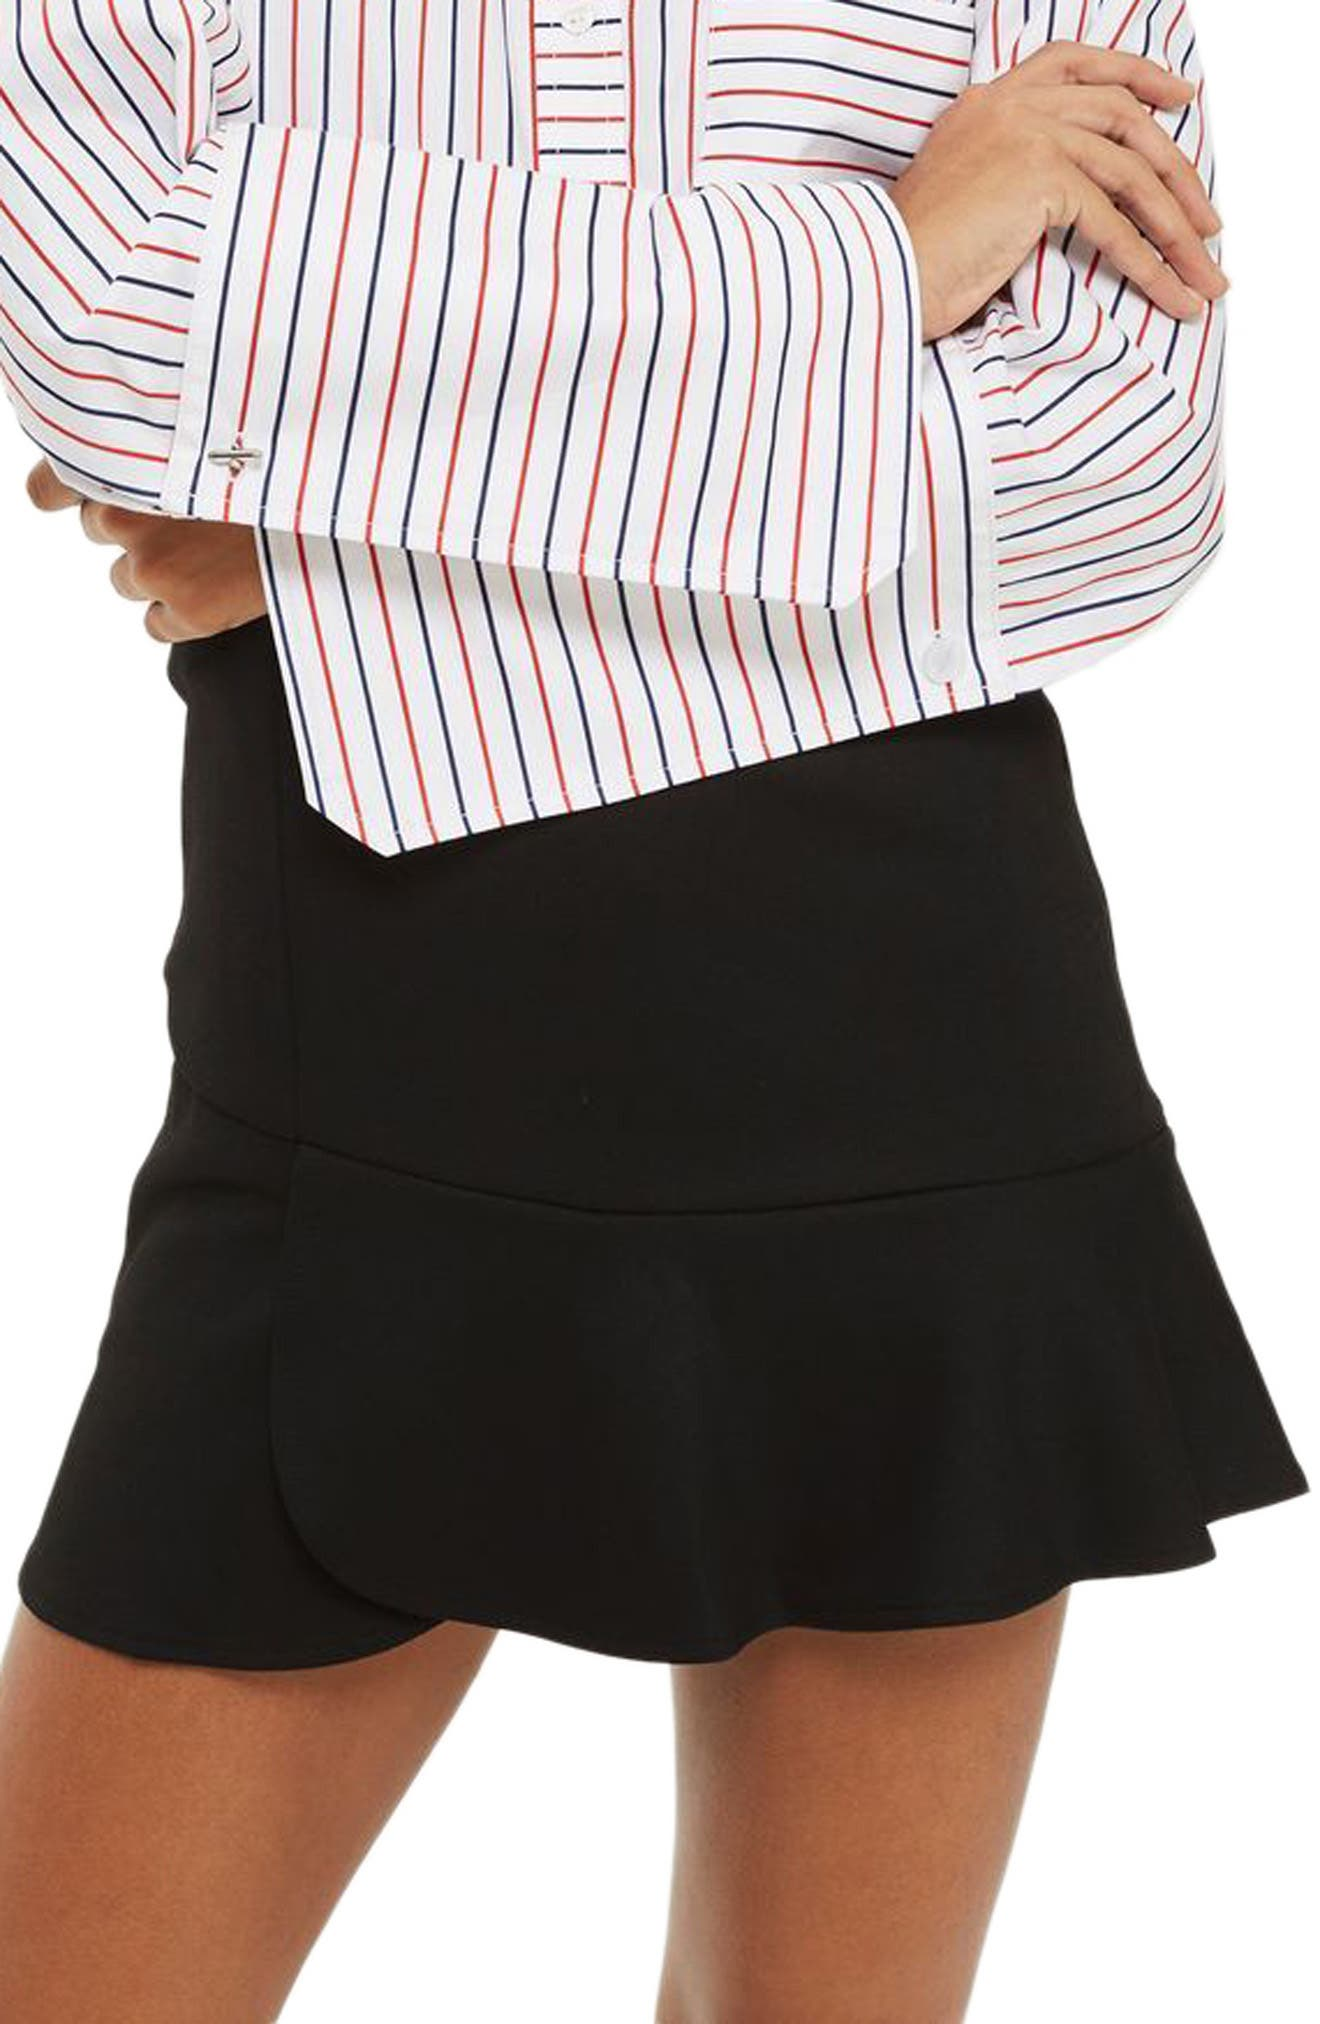 Paneled Flippy Miniskirt,                         Main,                         color, Black